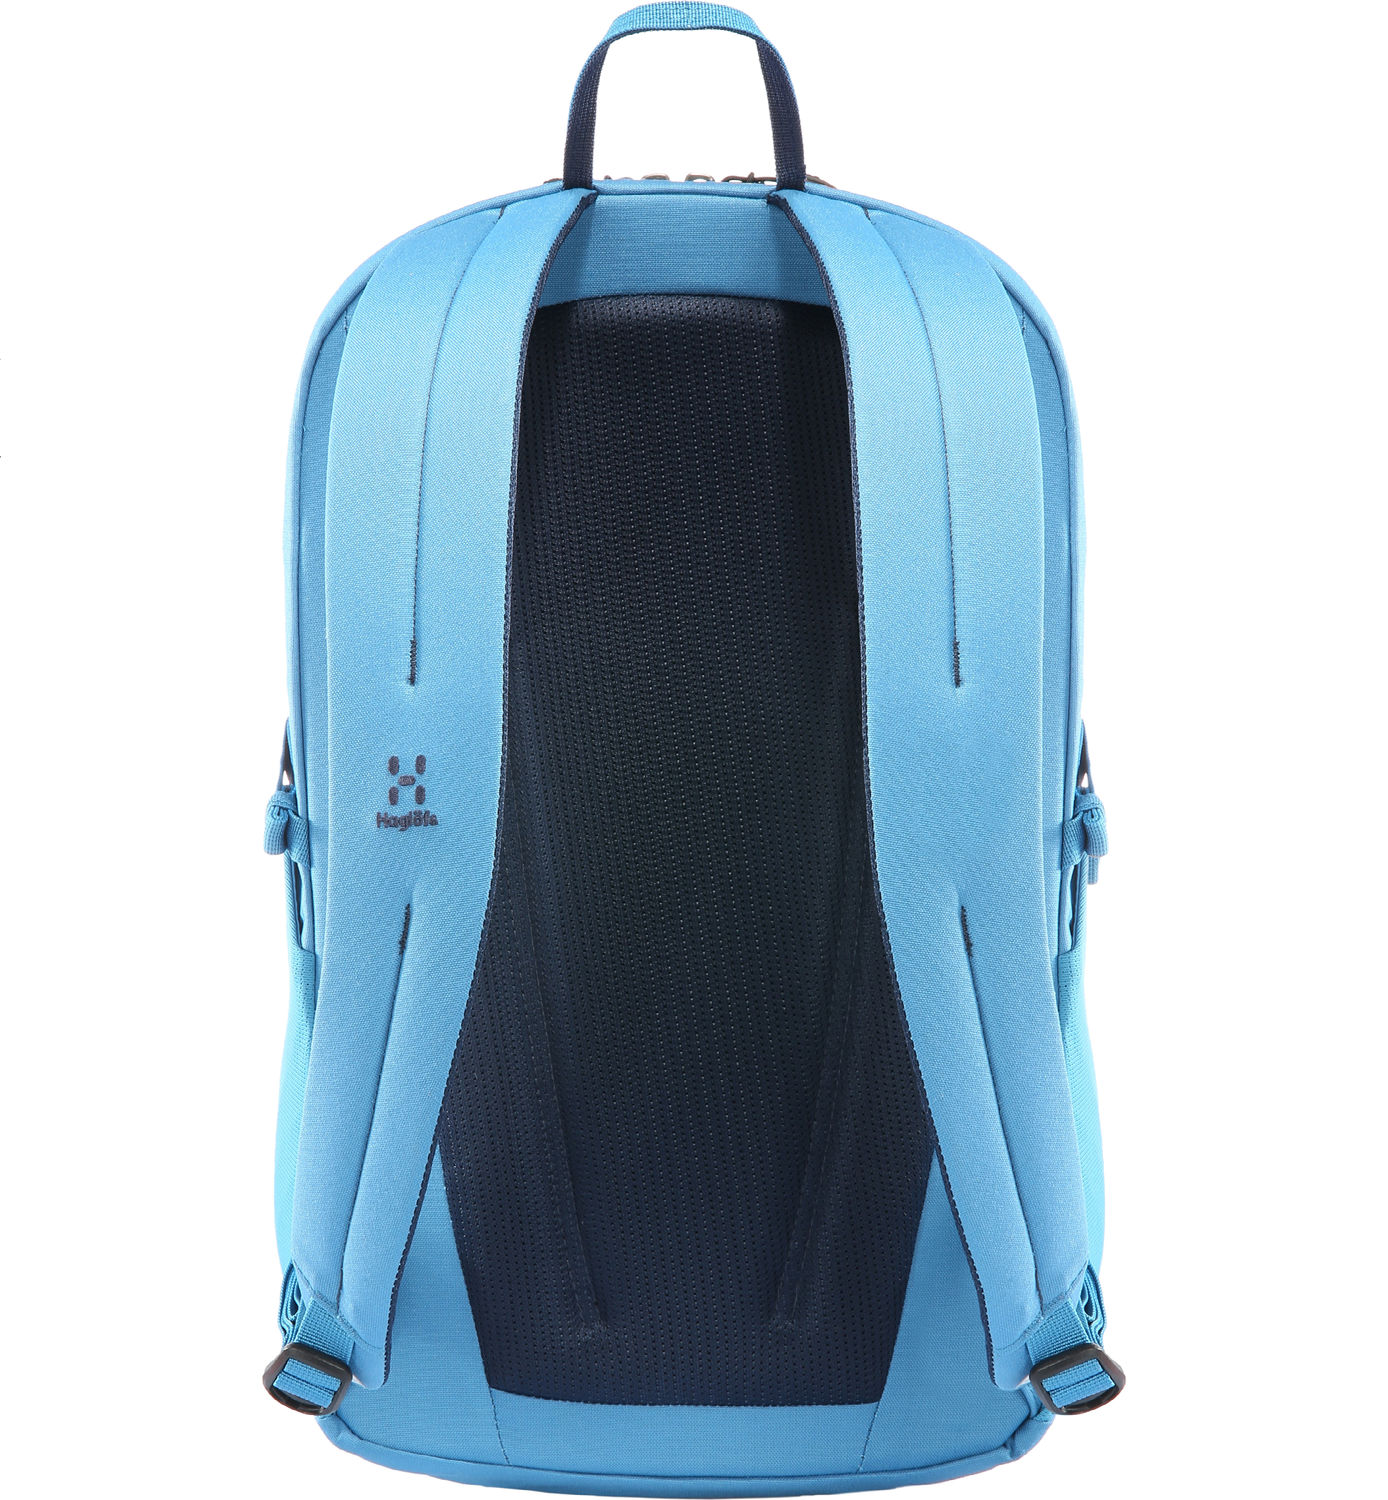 Рюкзак Haglofs Salg Medium Blue Fox/Tarn Blue - Фото 3 большая